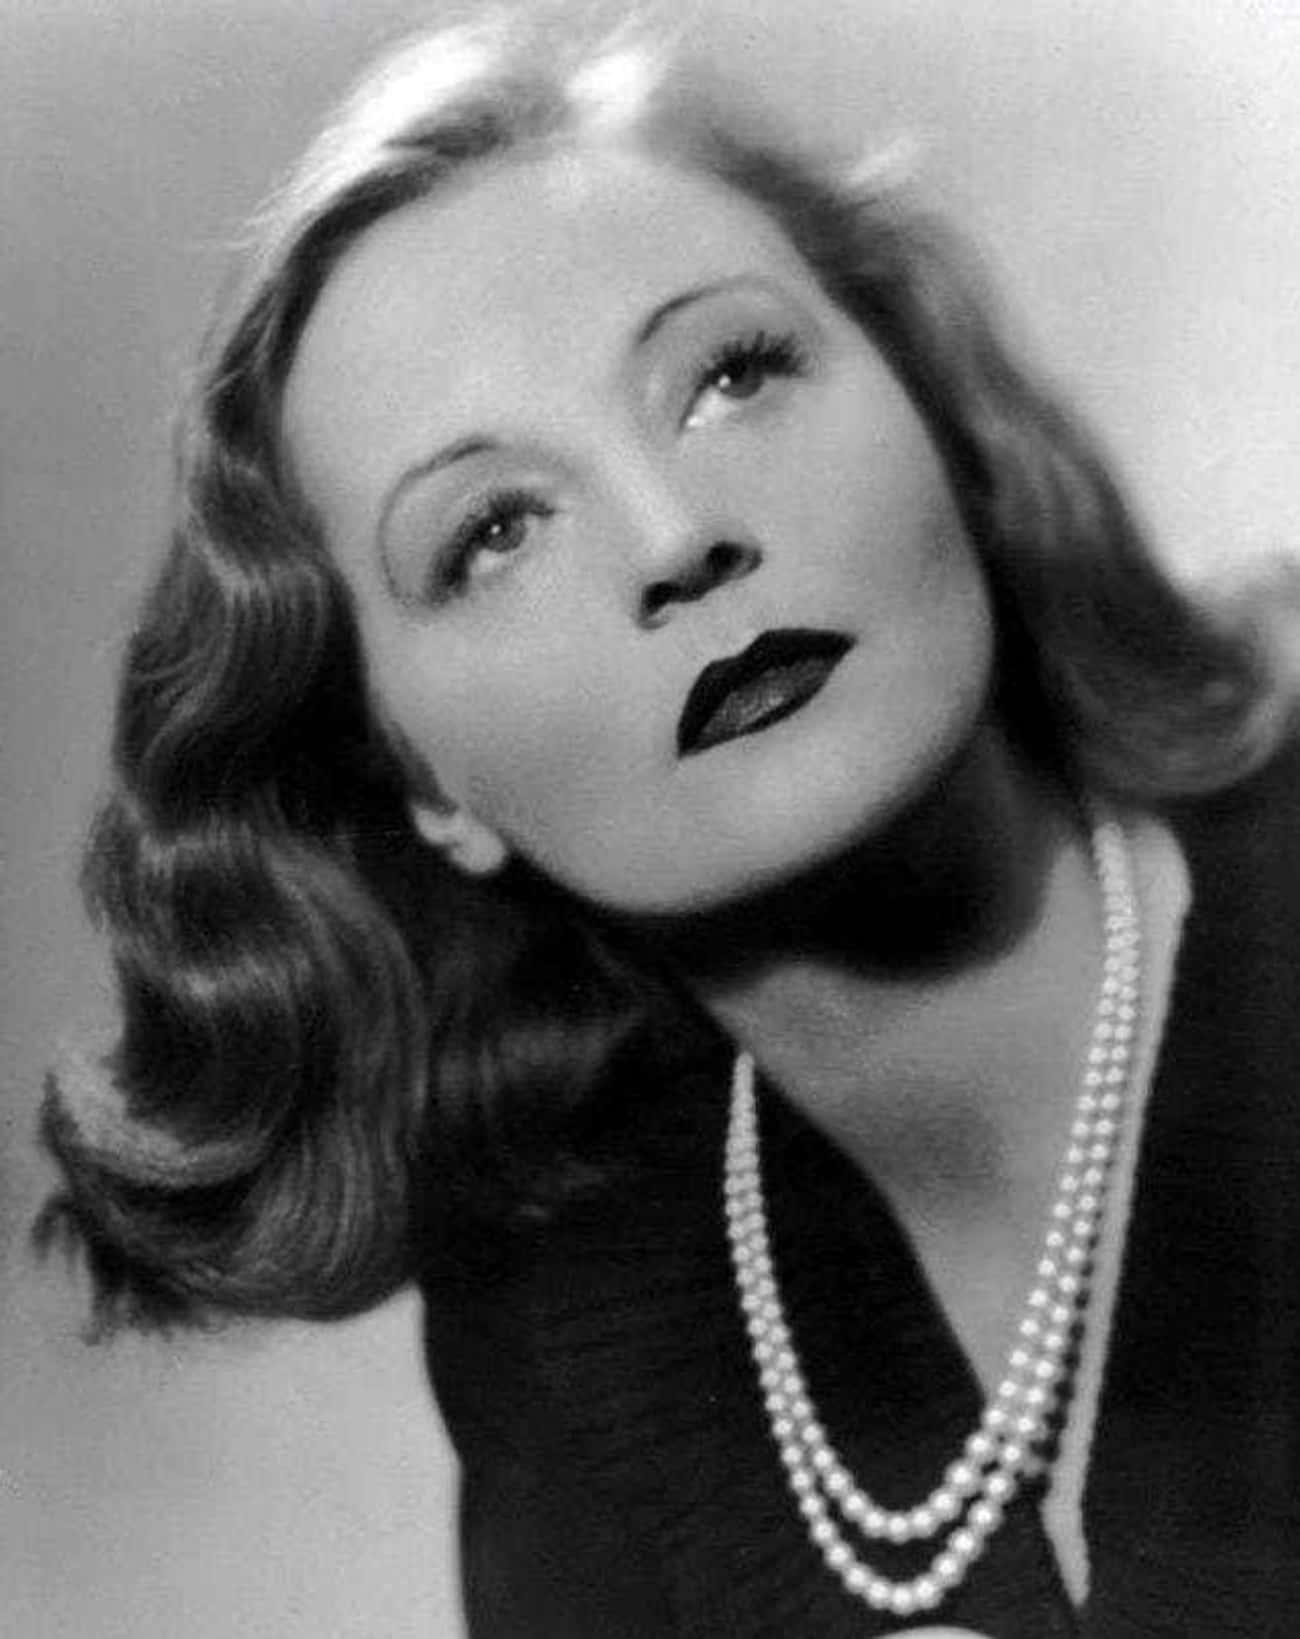 Actress Tallulah Bankhead Had  is listed (or ranked) 4 on the list 12 Historical Figures You Didn't Know Had STDs